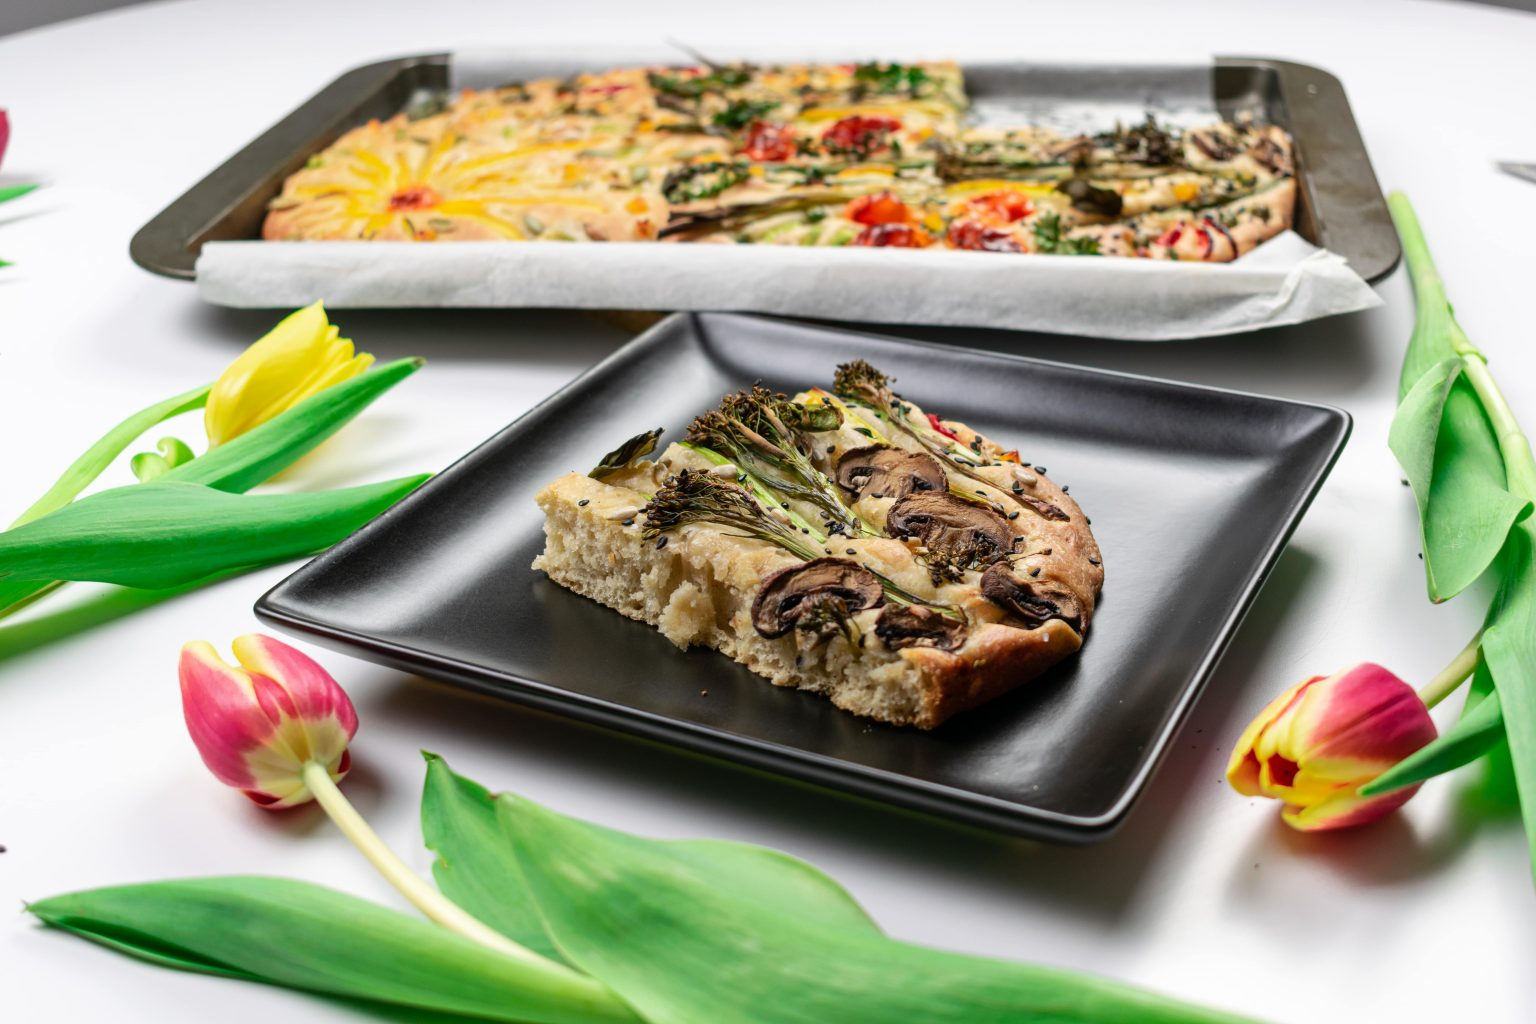 Slice of vegetable focaccia on black plate with flowers